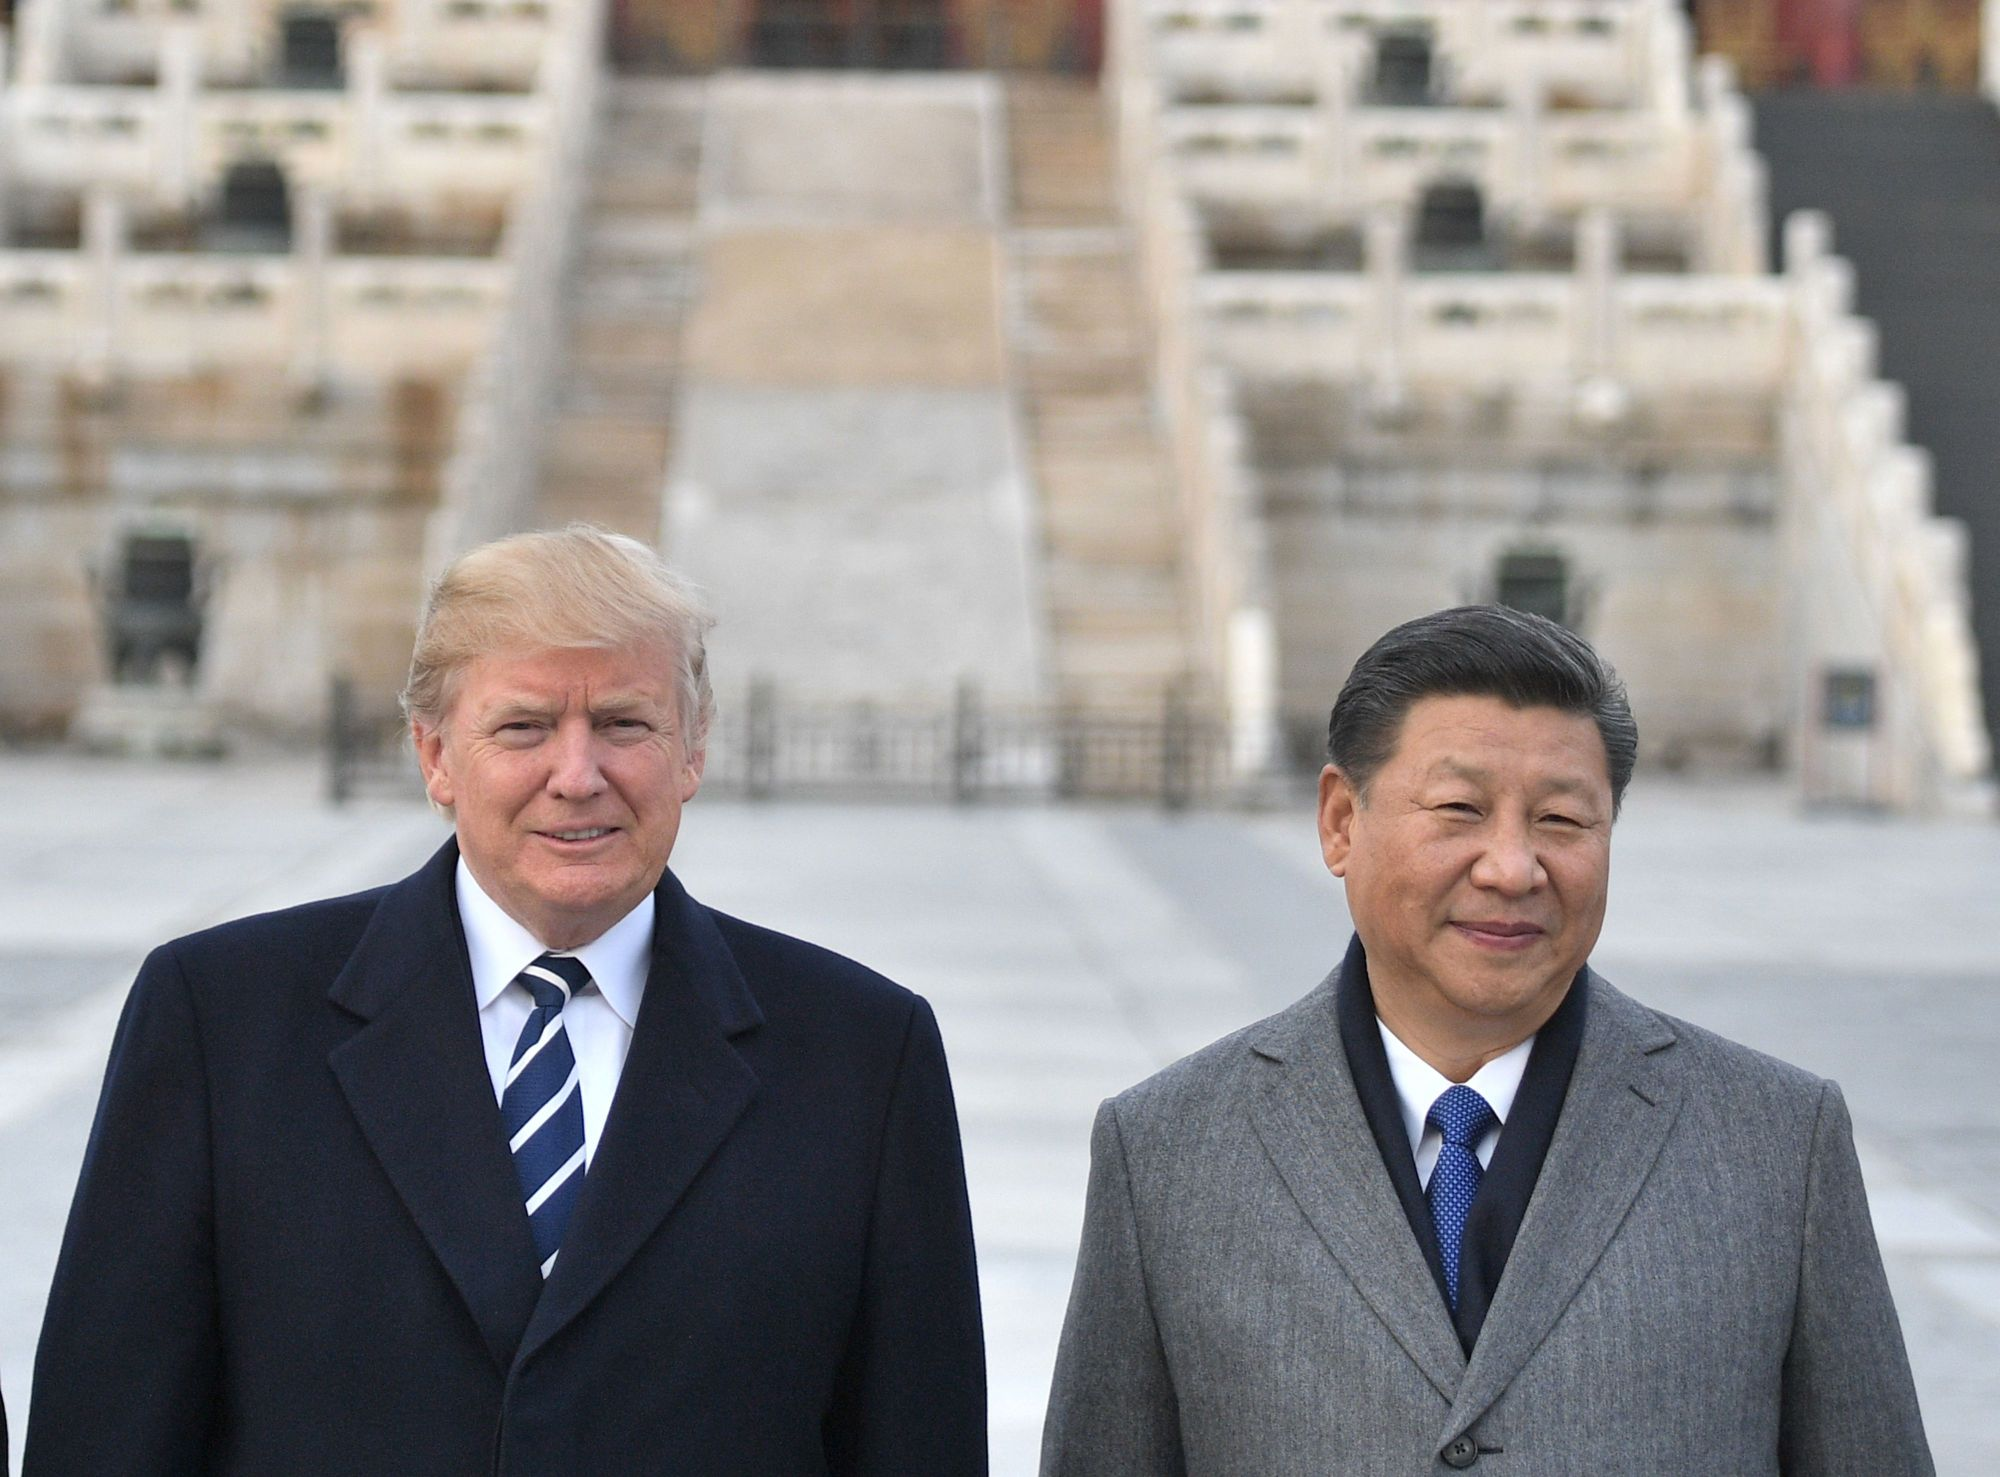 U..S President Donald Trump (left) and Chinese President Xi Jinping pose at the Forbidden City in Beijing last November. There is a 'good possibility' Trump will reach an agreement later this week to resolve the U..S trade dispute with China, a White House official said Tuesday.   AFP-JIJI